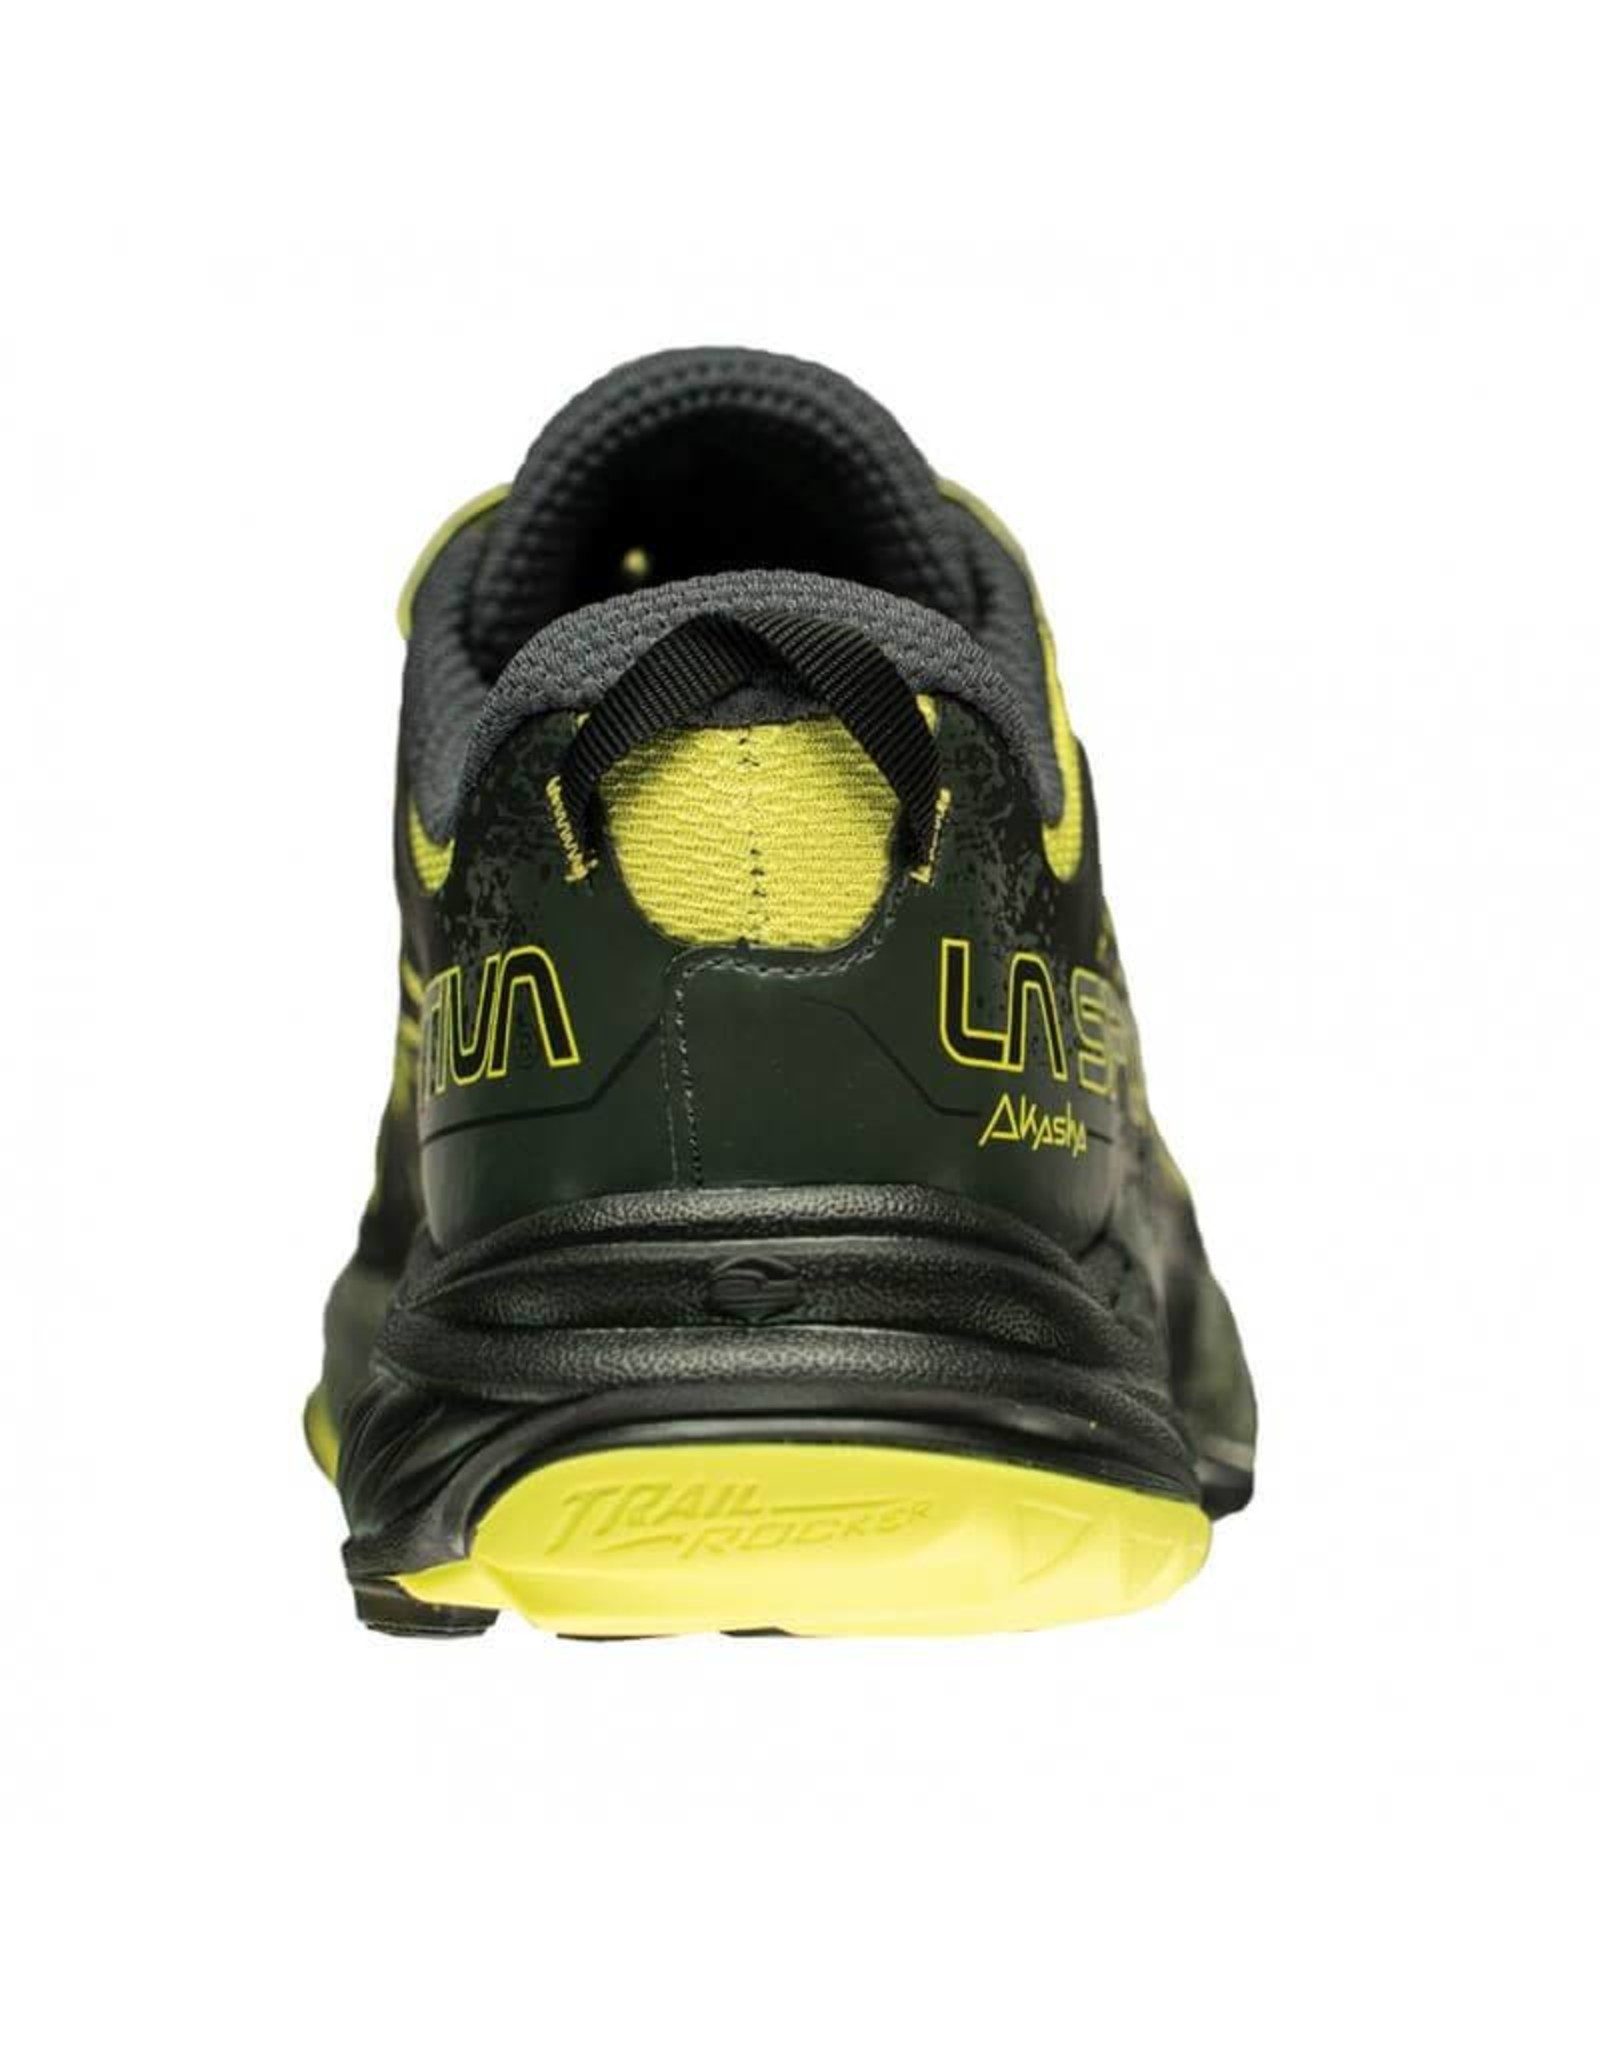 La Sportiva La Sportiva Akasha Running Shoes - Men